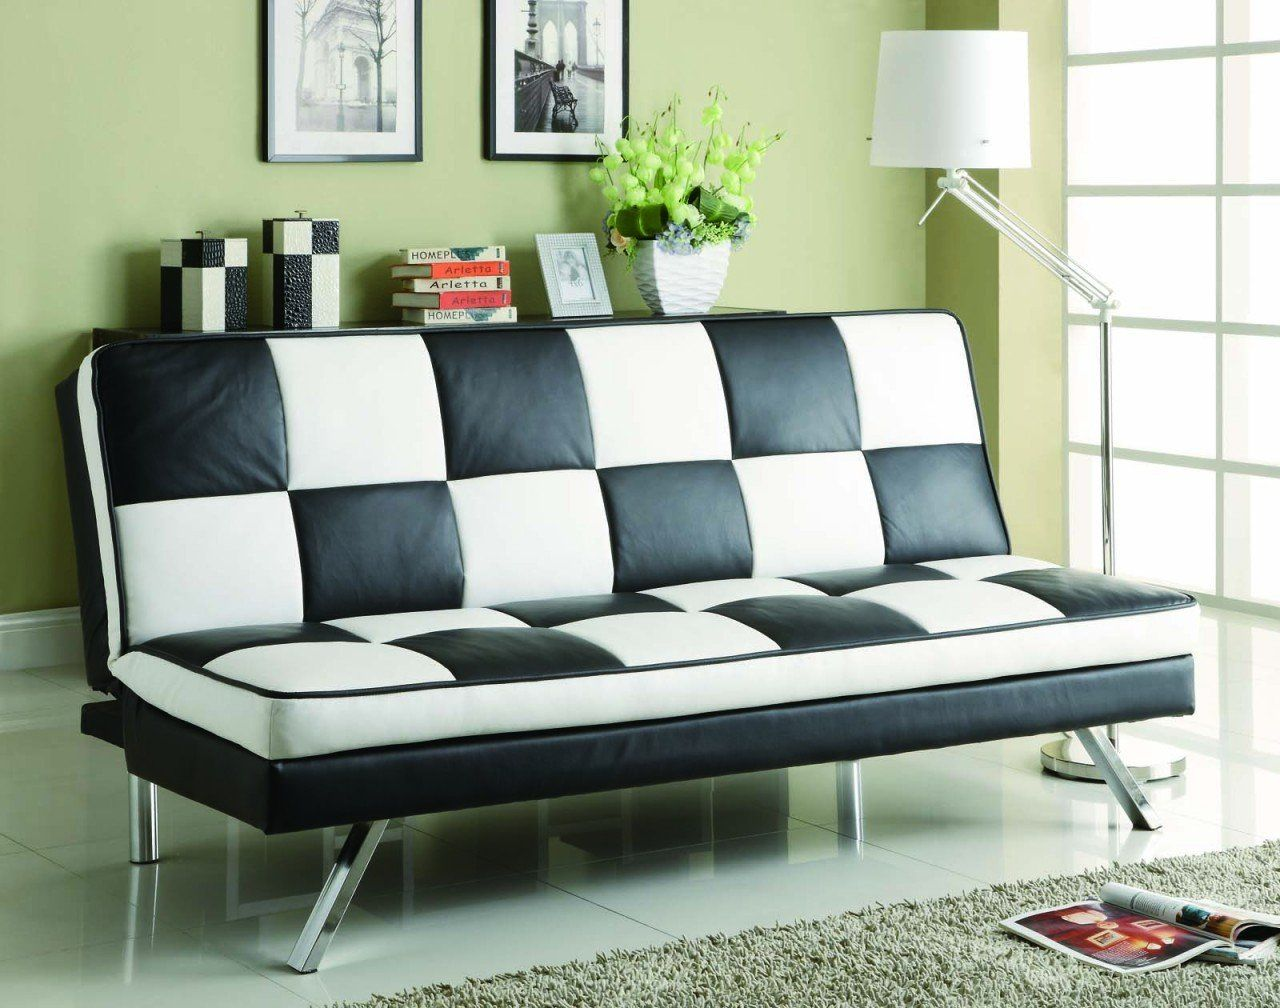 black and white retro checkered sofa bed by coaster  rather inexpensive  black and white retro checkered sofa bed by coaster  rather      rh   pinterest